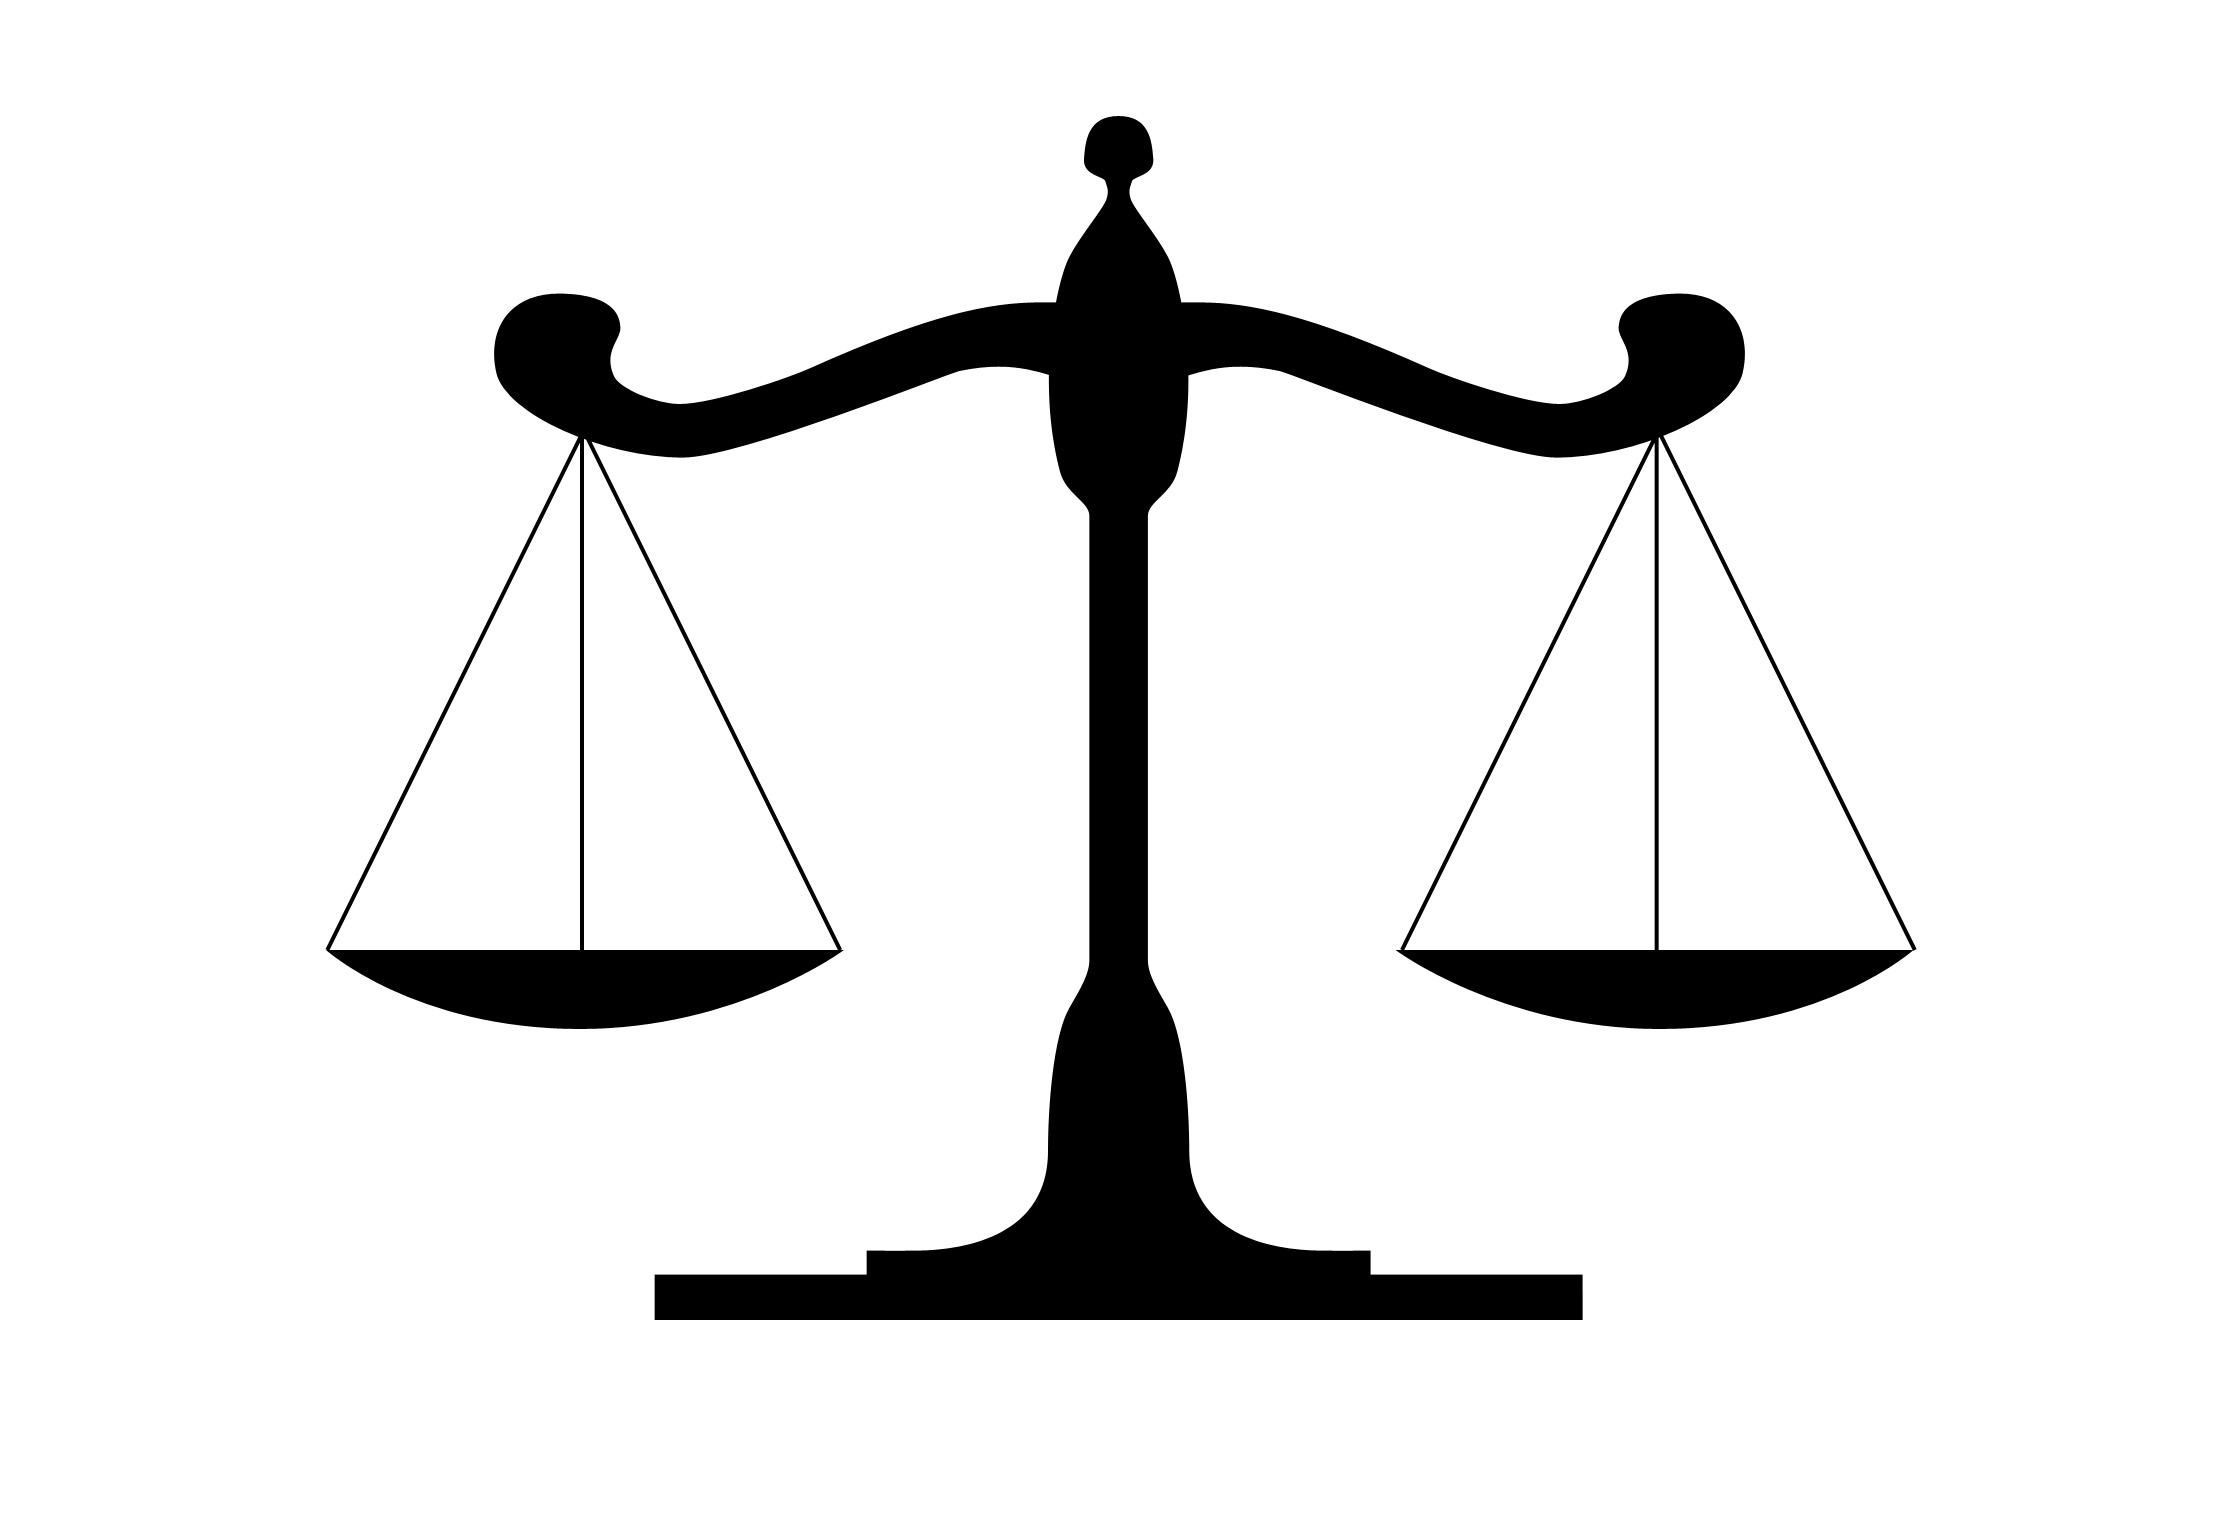 Justice Scales Clipart